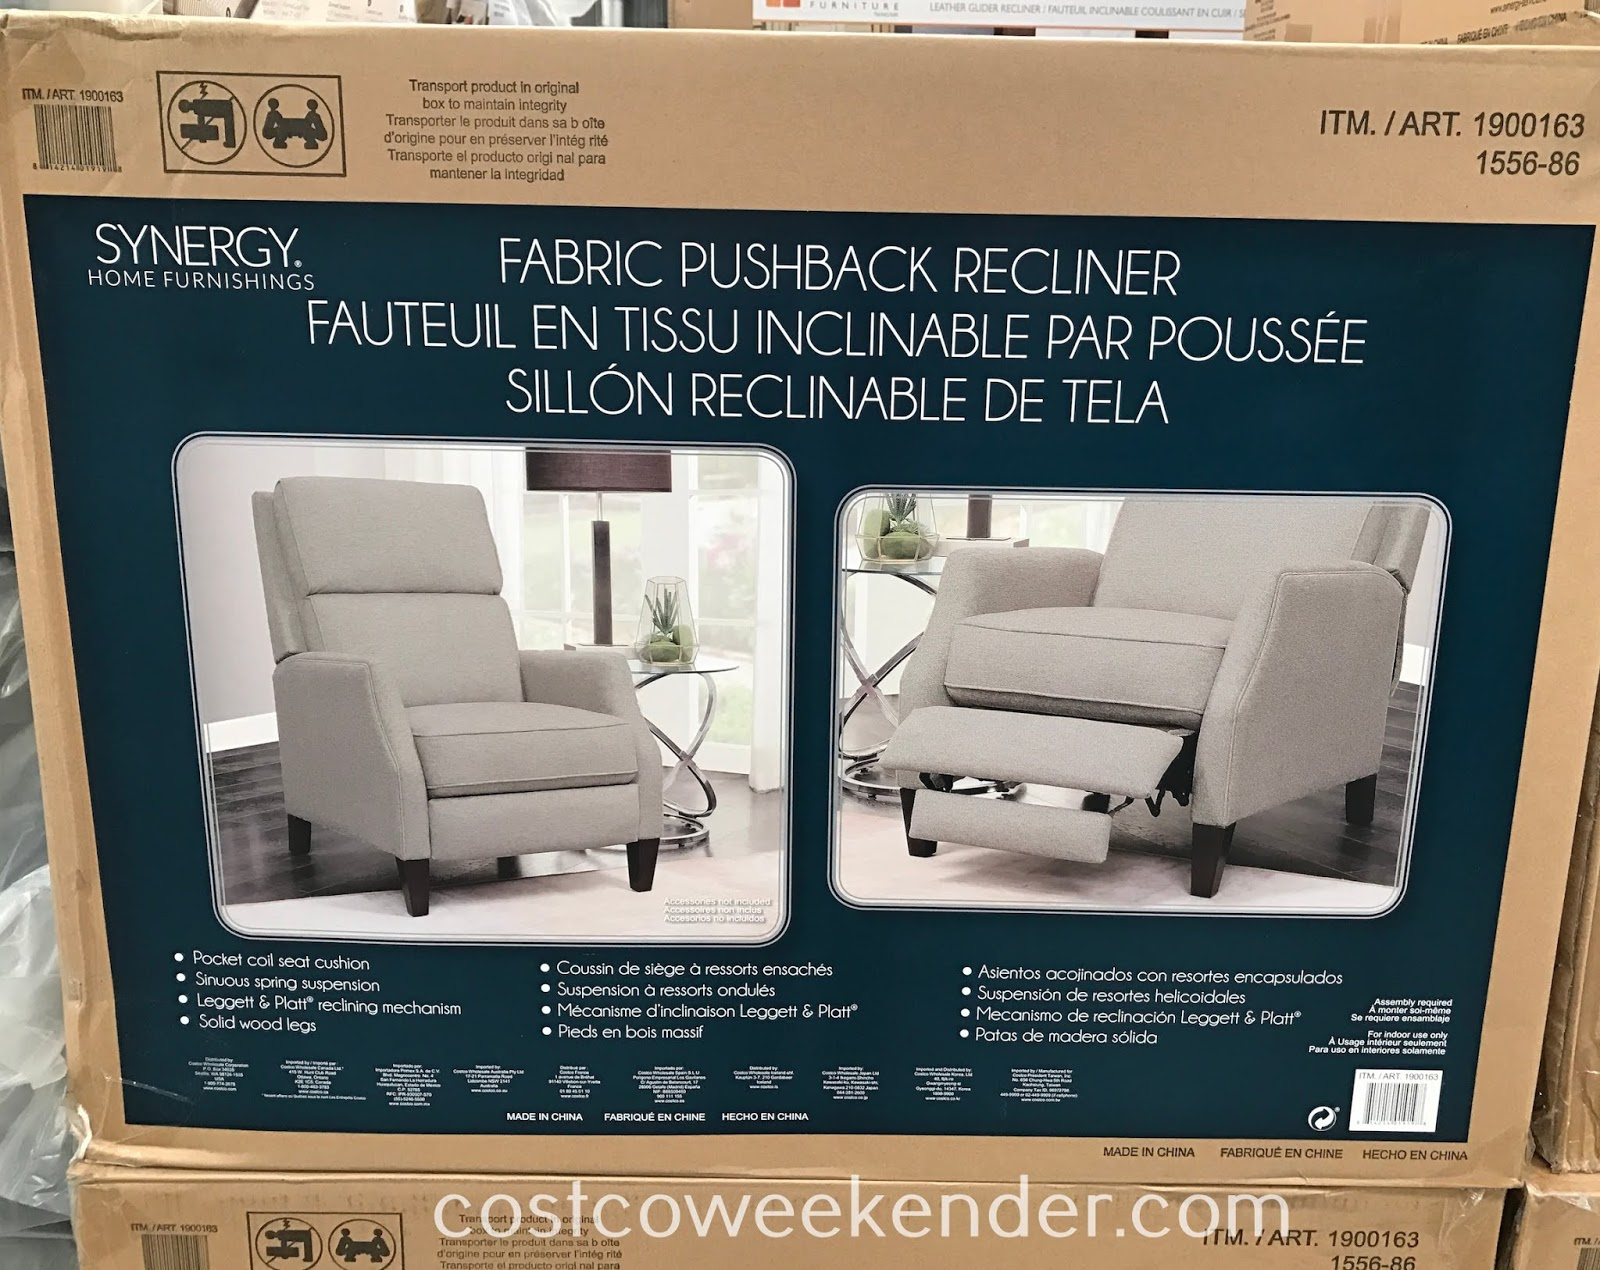 Kick back and relax after a long day of work in the Synergy Home Fabric Pushback Recliner